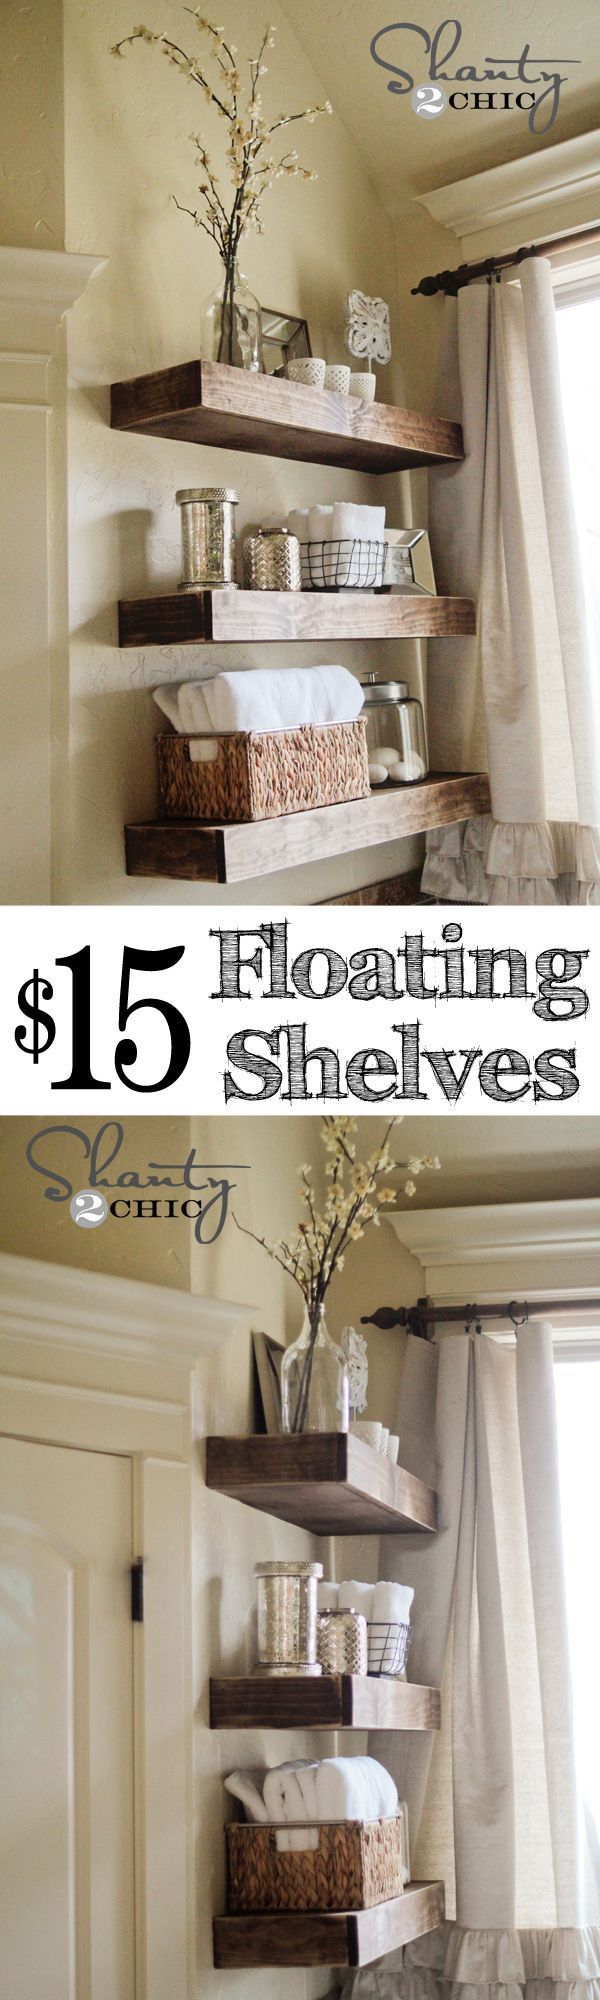 Small Bathroom Curtain Ideas Part - 48: Super Cute DIY Floating Shelves For My Bathroom (also Window Treatment)